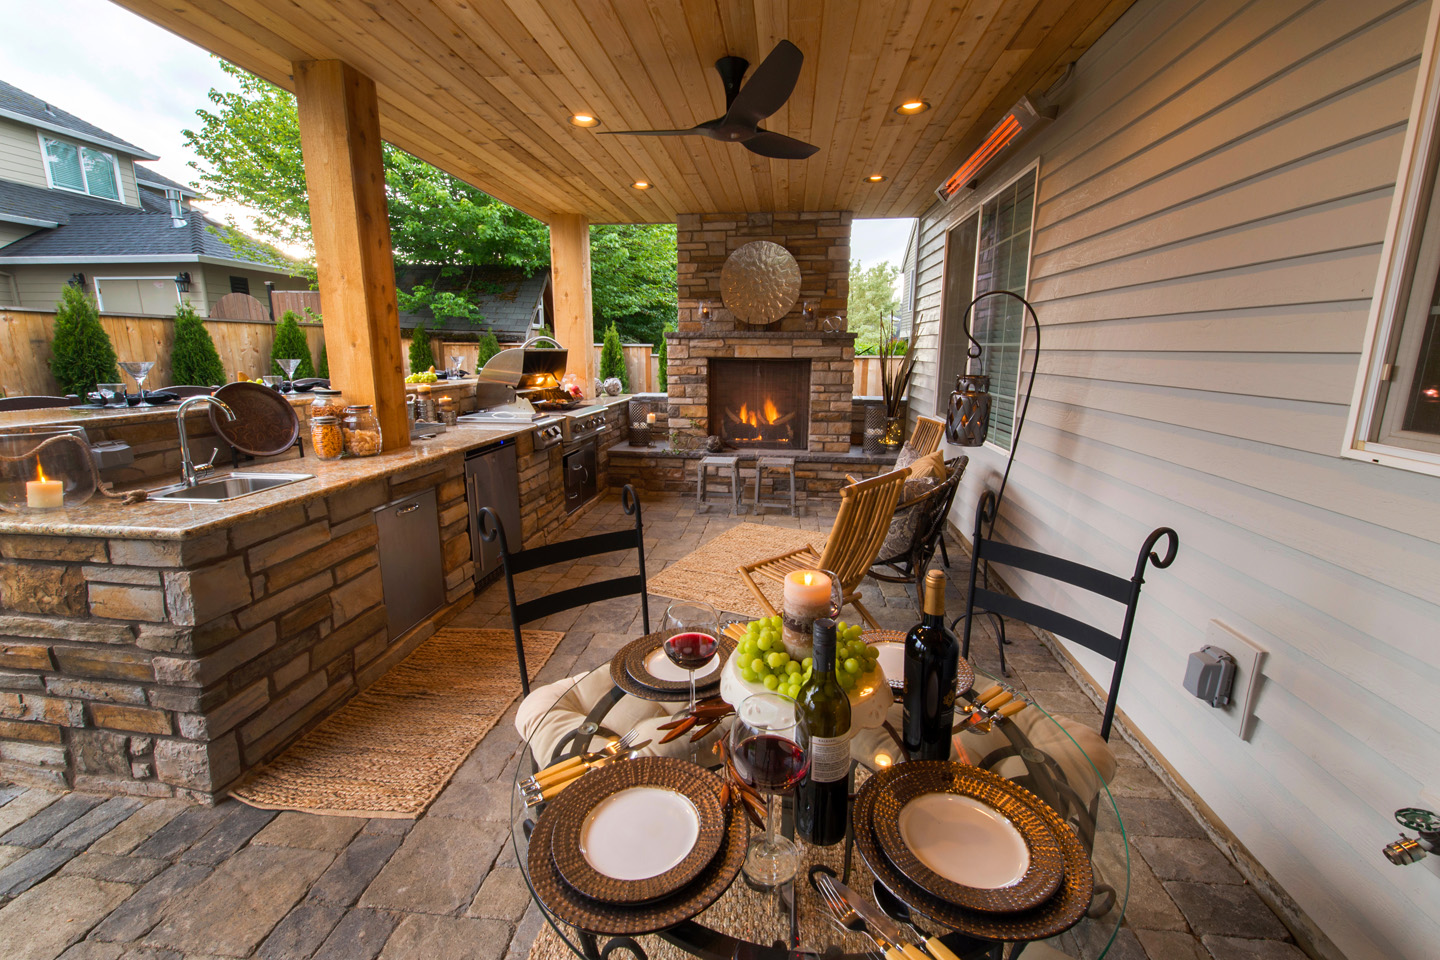 Four Seasons Outdoor Living - Paradise Restored Landscaping on 4 Seasons Outdoor Living id=71712